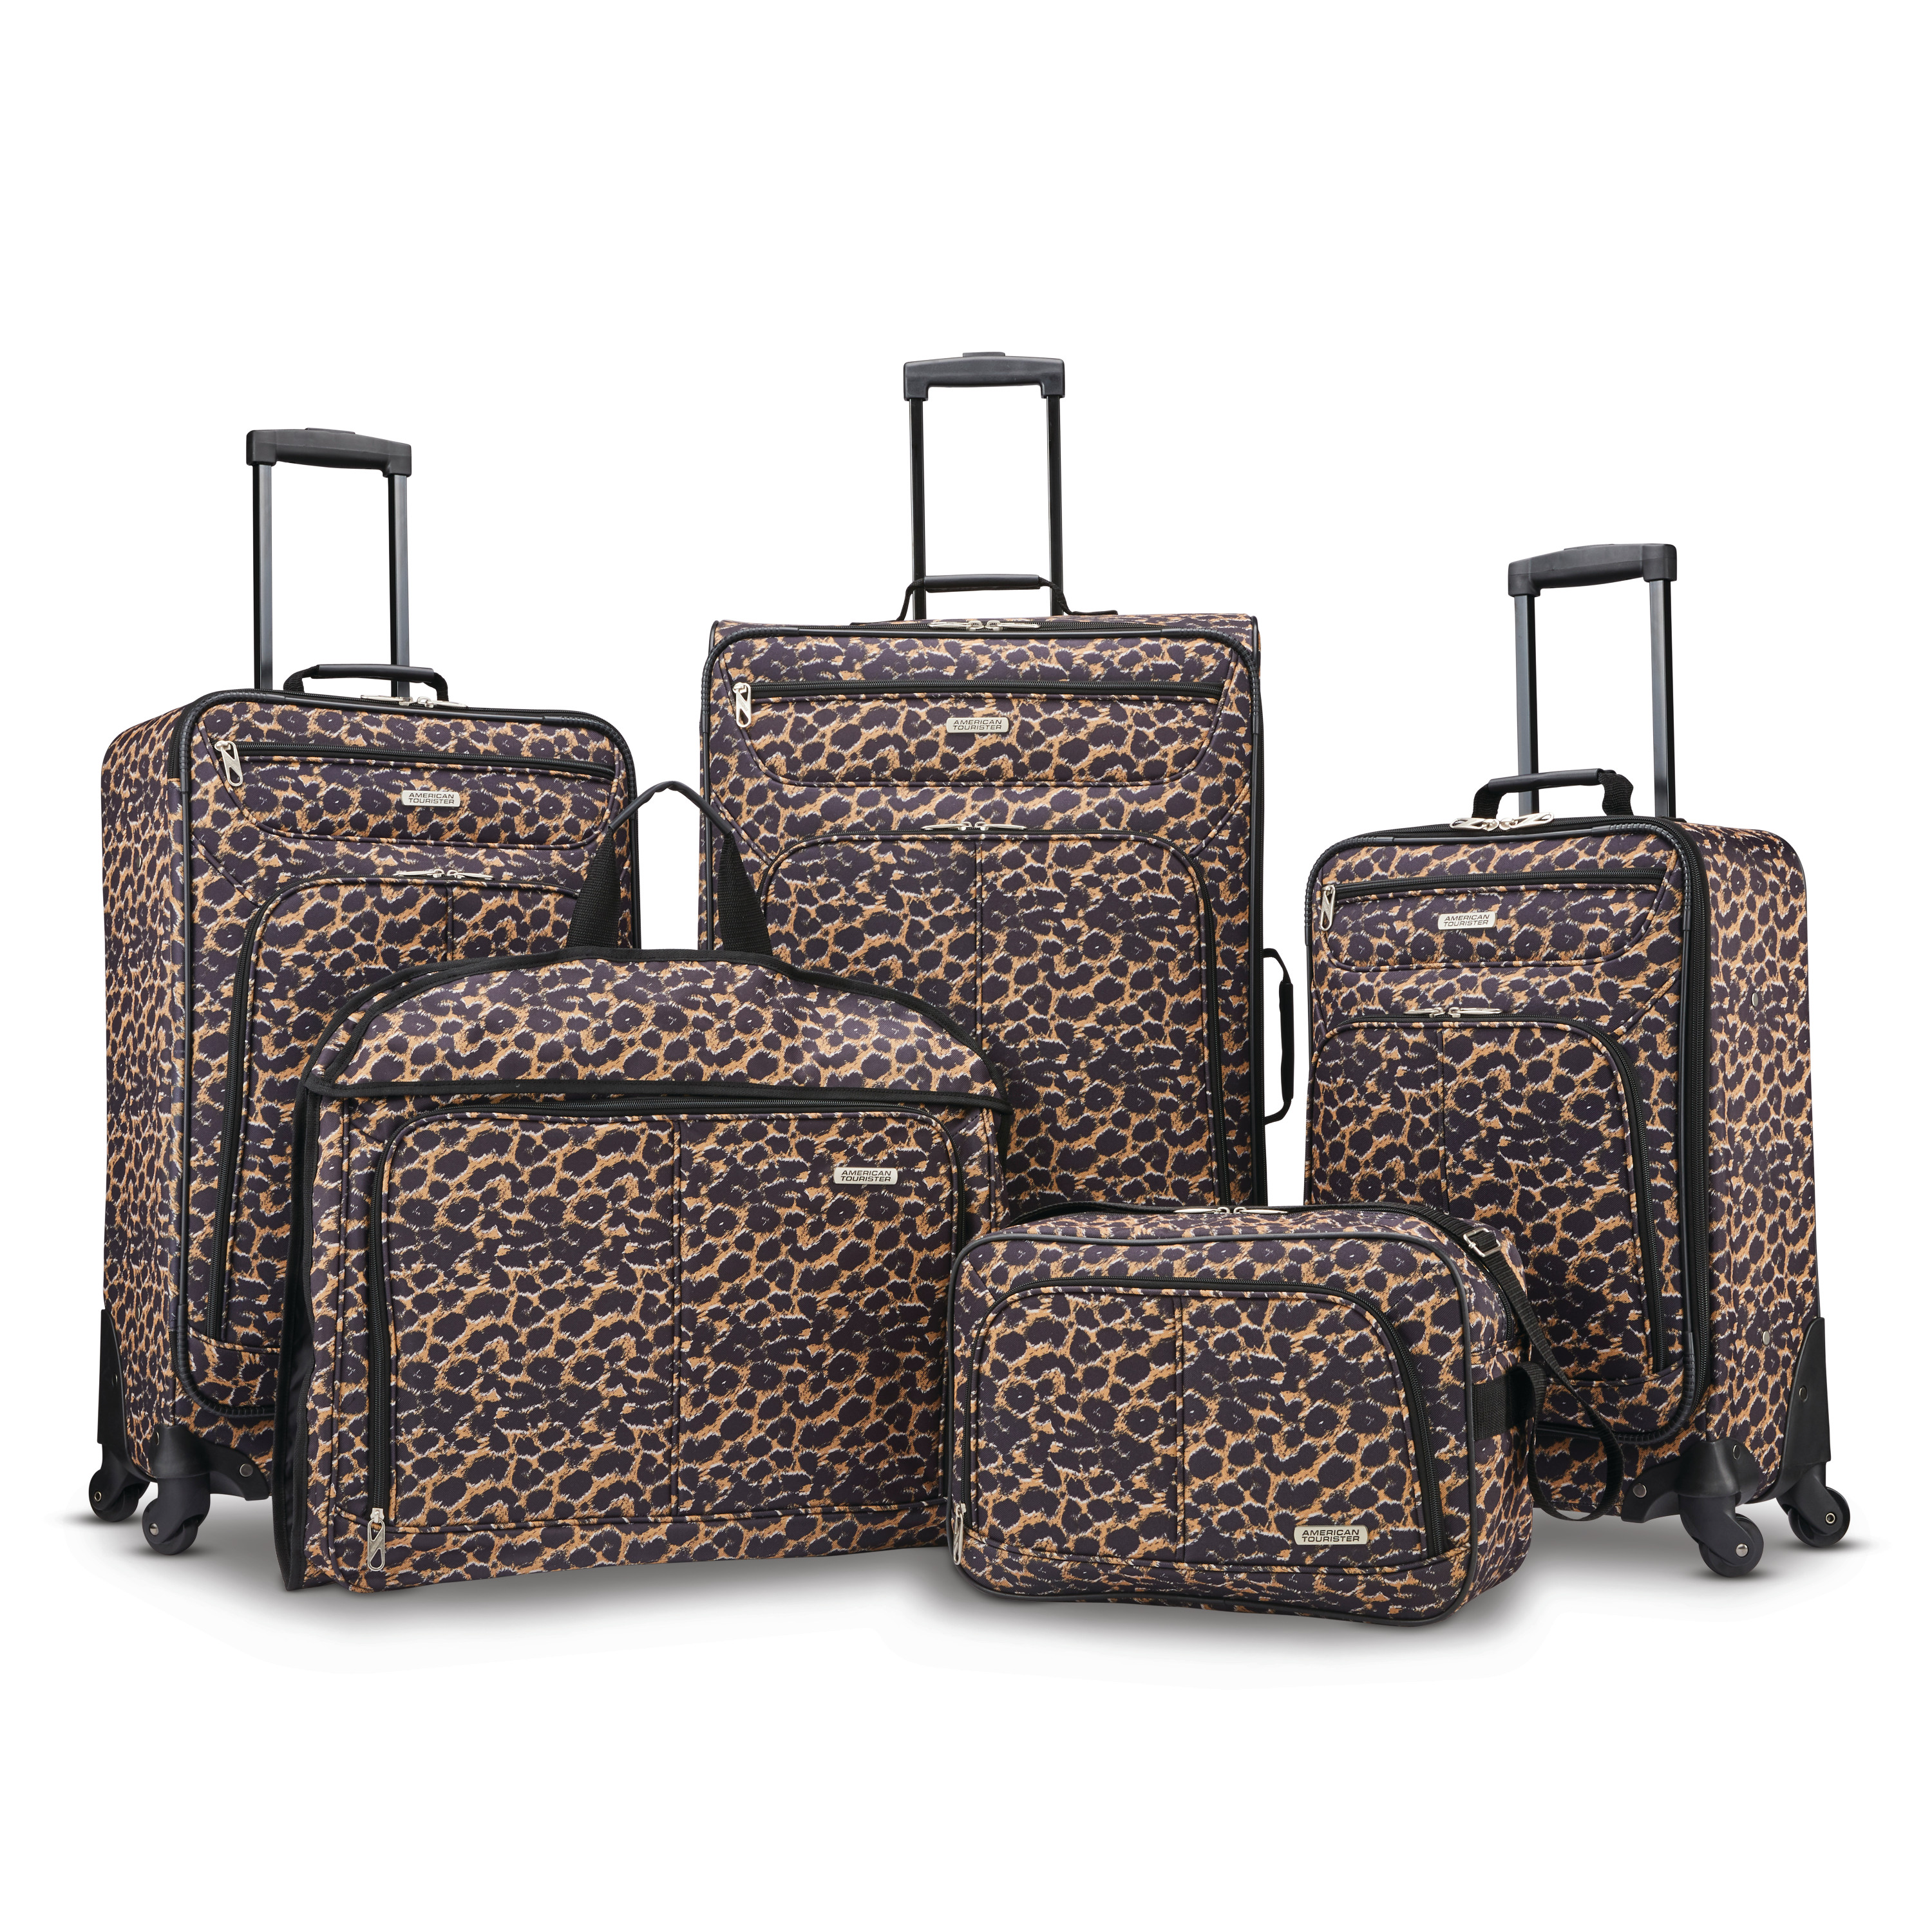 American Tourister 5 Piece Spinner Luggage Set